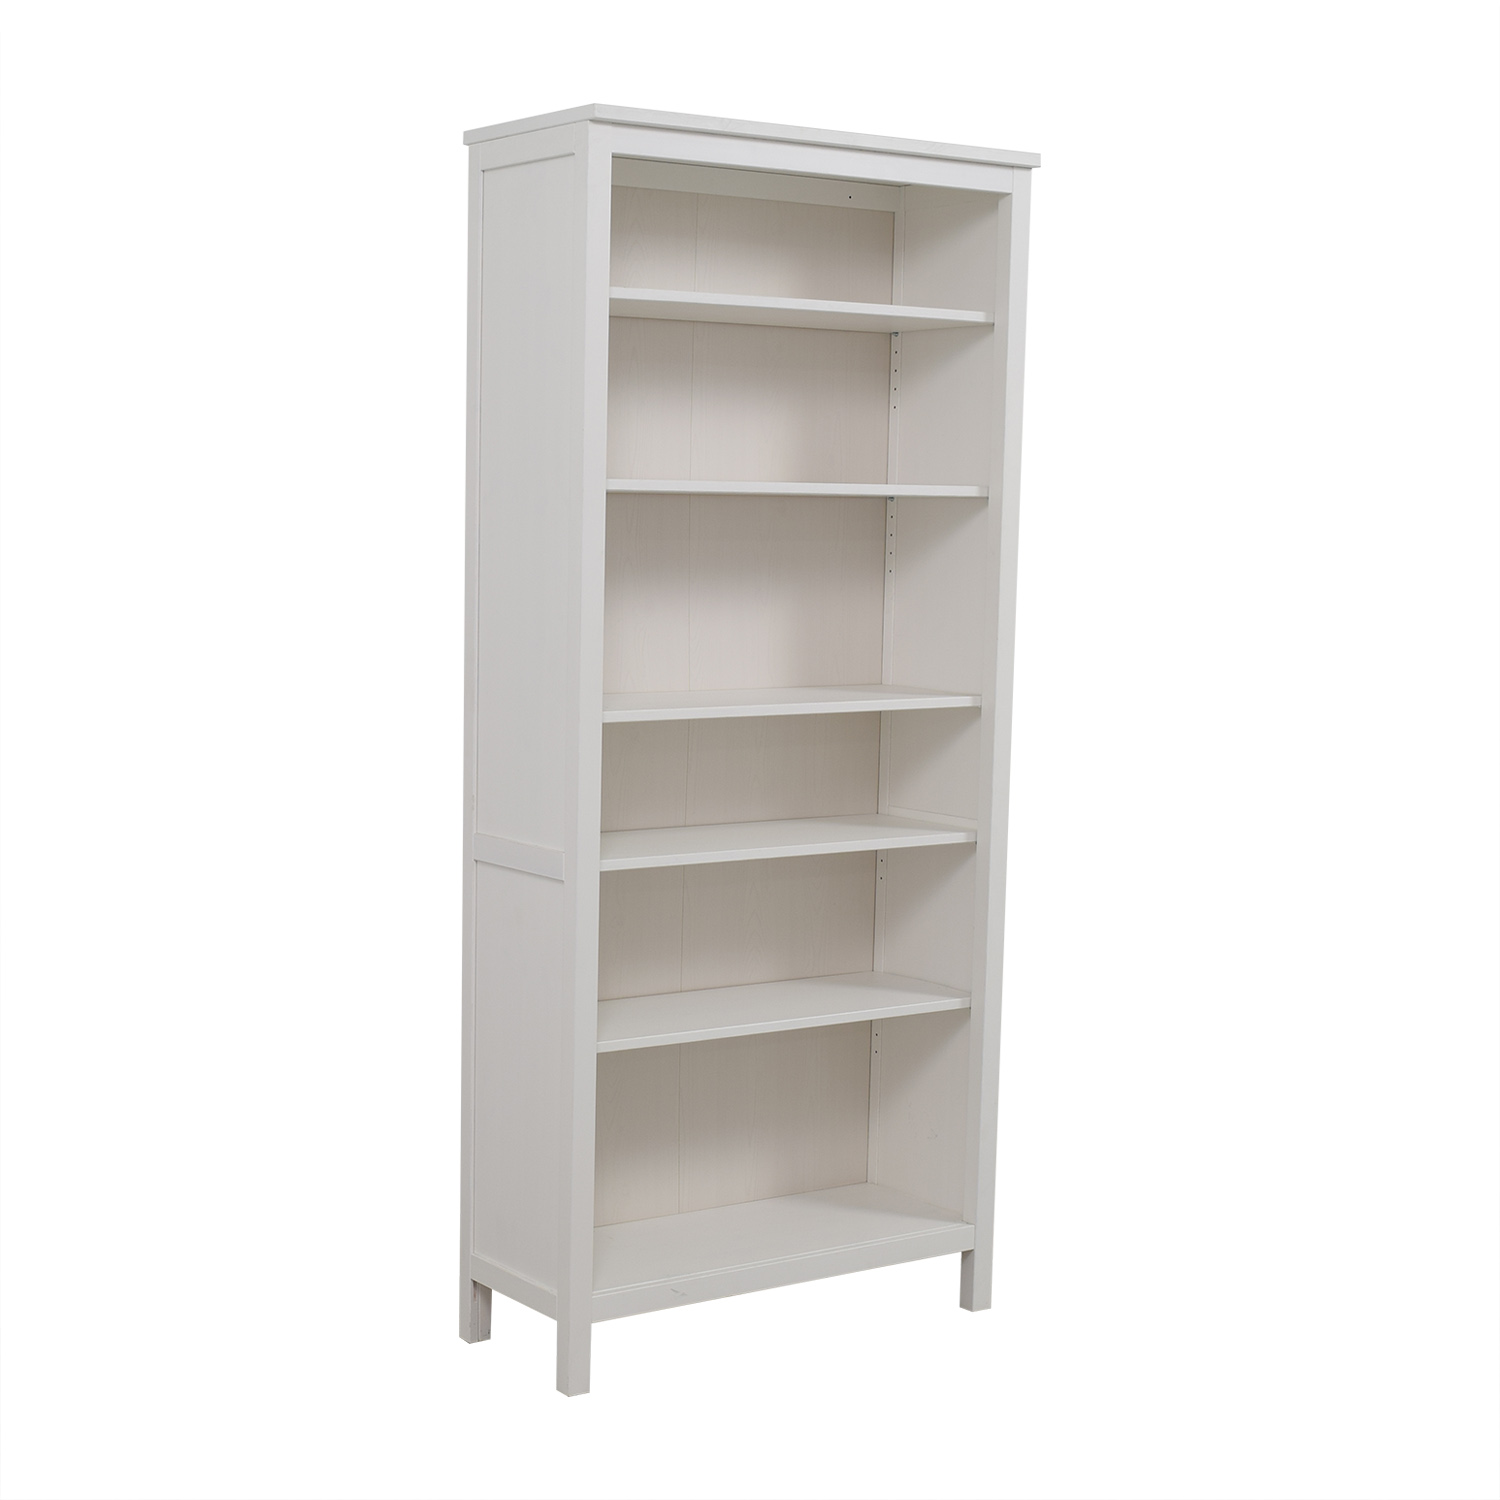 34% OFF IKEA IKEA White Hemnes Bookshelf Storage